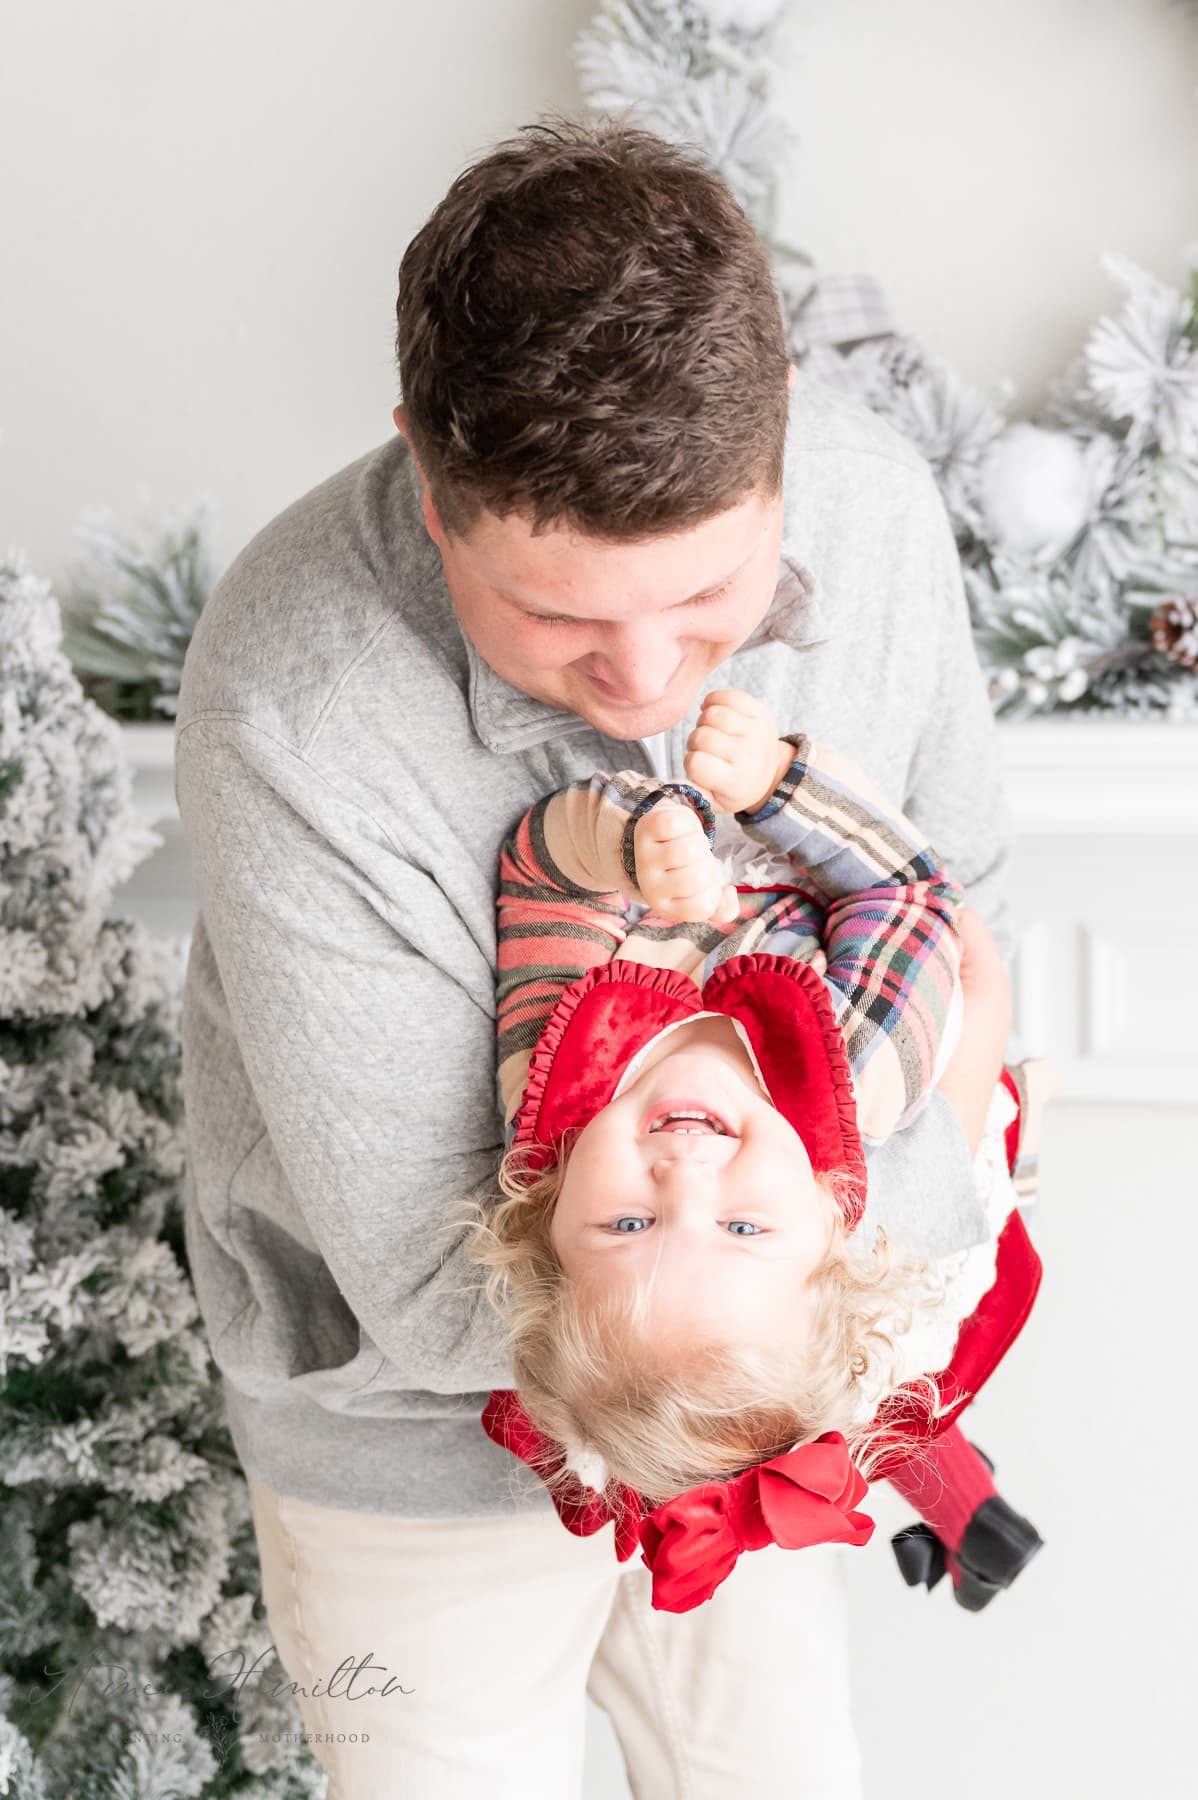 Dad and baby Christmas pictures